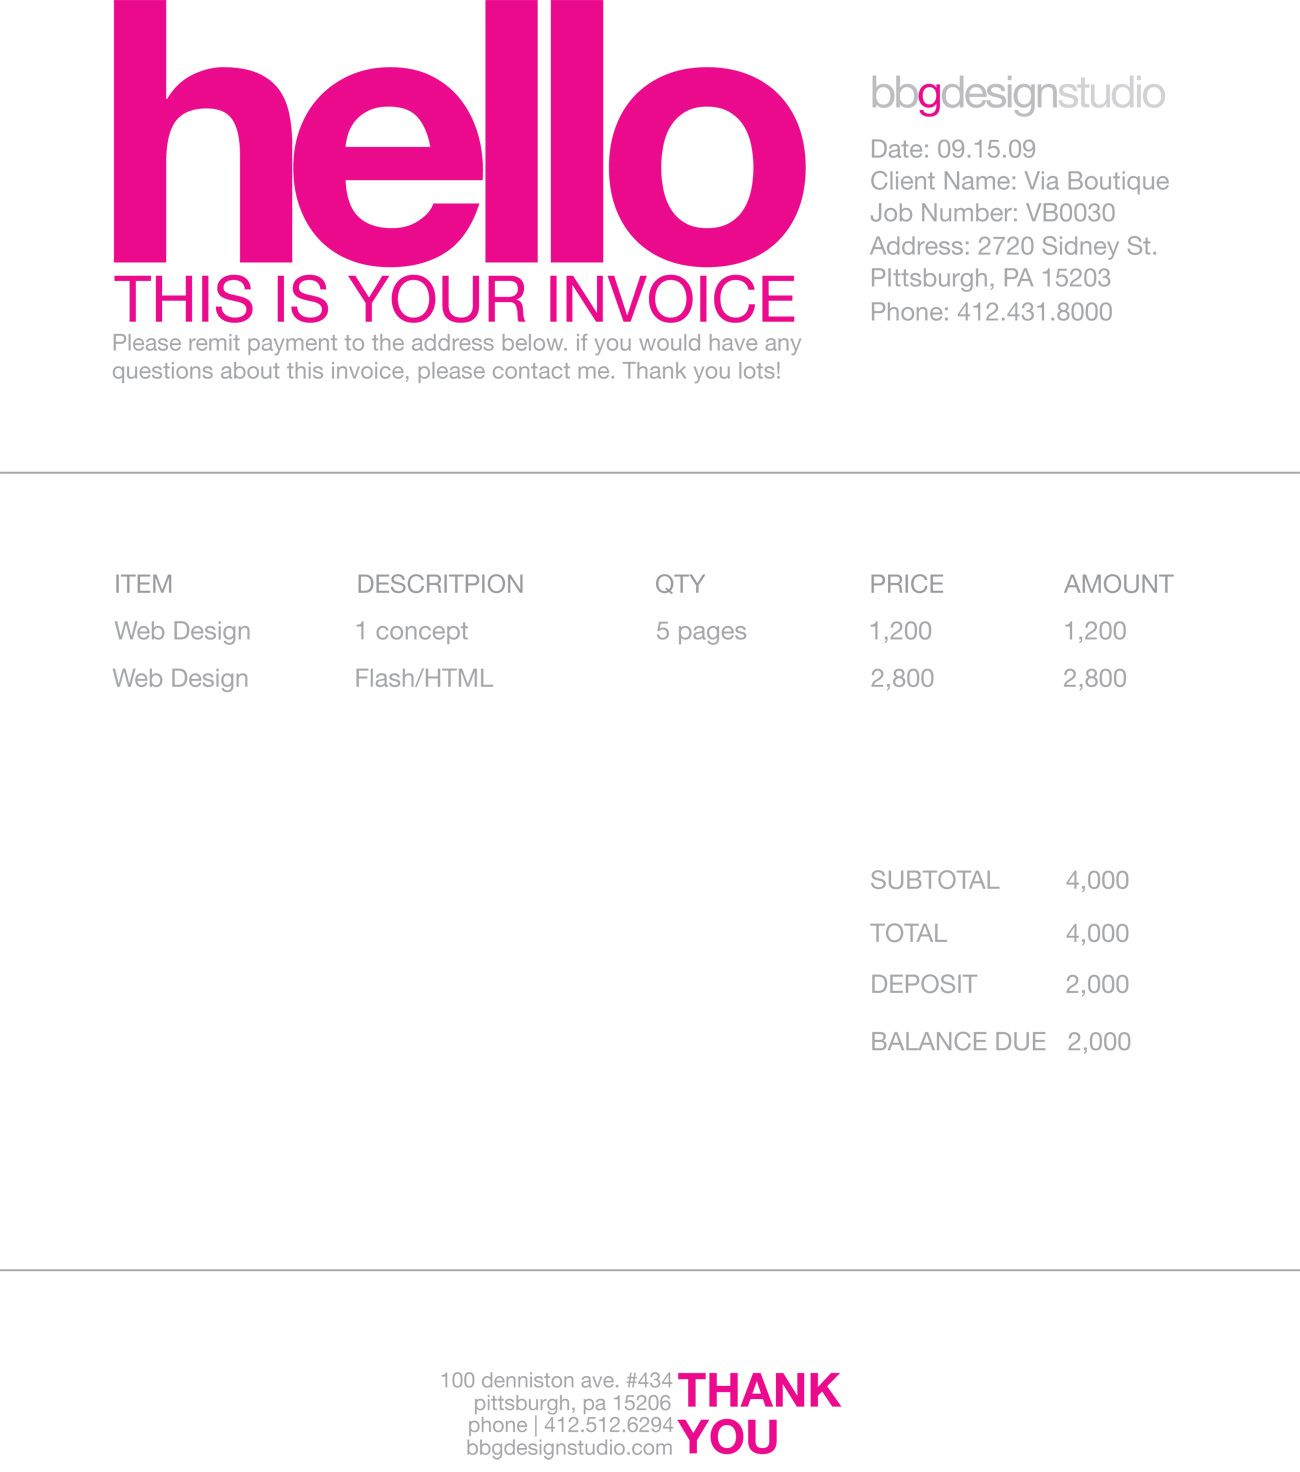 Ebitus  Pretty  Images About Invoice Design On Pinterest With Exciting Basic Invoice Besides How To Make An Invoice On Paypal Furthermore Invoice Payment With Agreeable Msrp Vs Invoice Price Also Toll By Plate Com Invoice In Addition Invoice Payment Terms And How To Invoice On Paypal As Well As What Is Paypal Invoice Additionally Invoice Paper From Pinterestcom With Ebitus  Exciting  Images About Invoice Design On Pinterest With Agreeable Basic Invoice Besides How To Make An Invoice On Paypal Furthermore Invoice Payment And Pretty Msrp Vs Invoice Price Also Toll By Plate Com Invoice In Addition Invoice Payment Terms From Pinterestcom